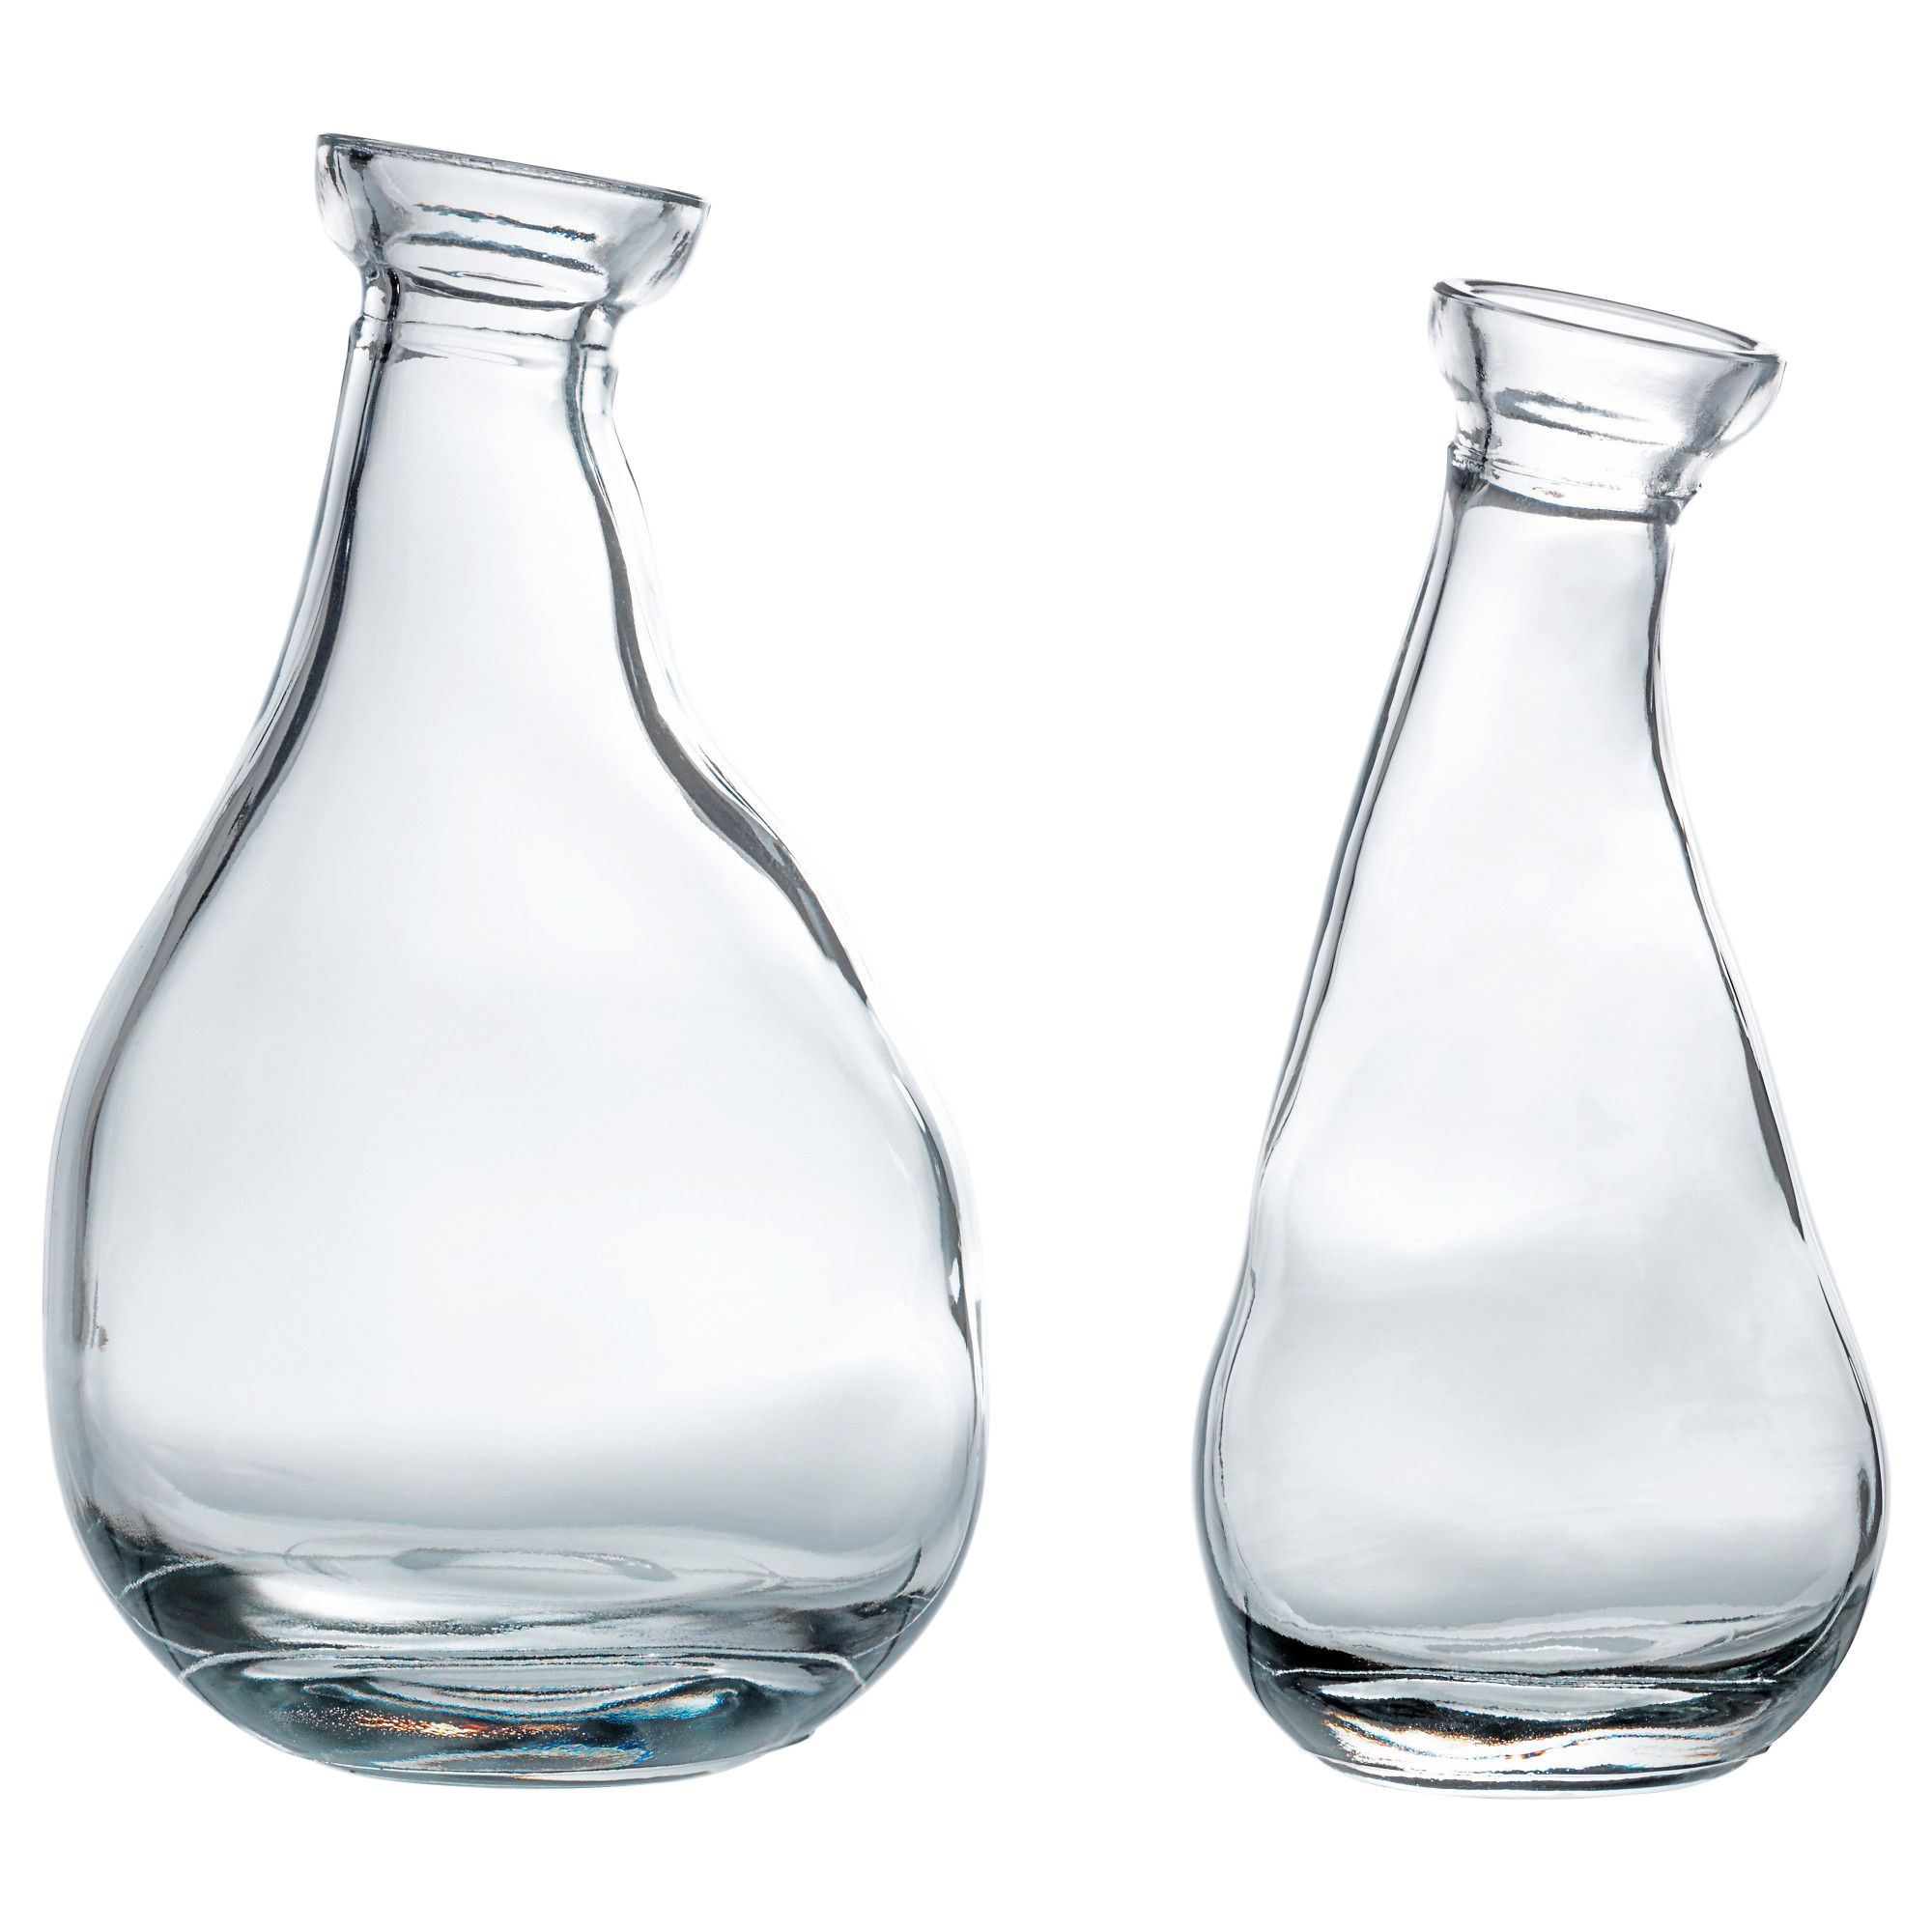 Glass Vases Ikea Ikea VÅrvind Vase Set Of 2 The Unique Shape Makes The Vases